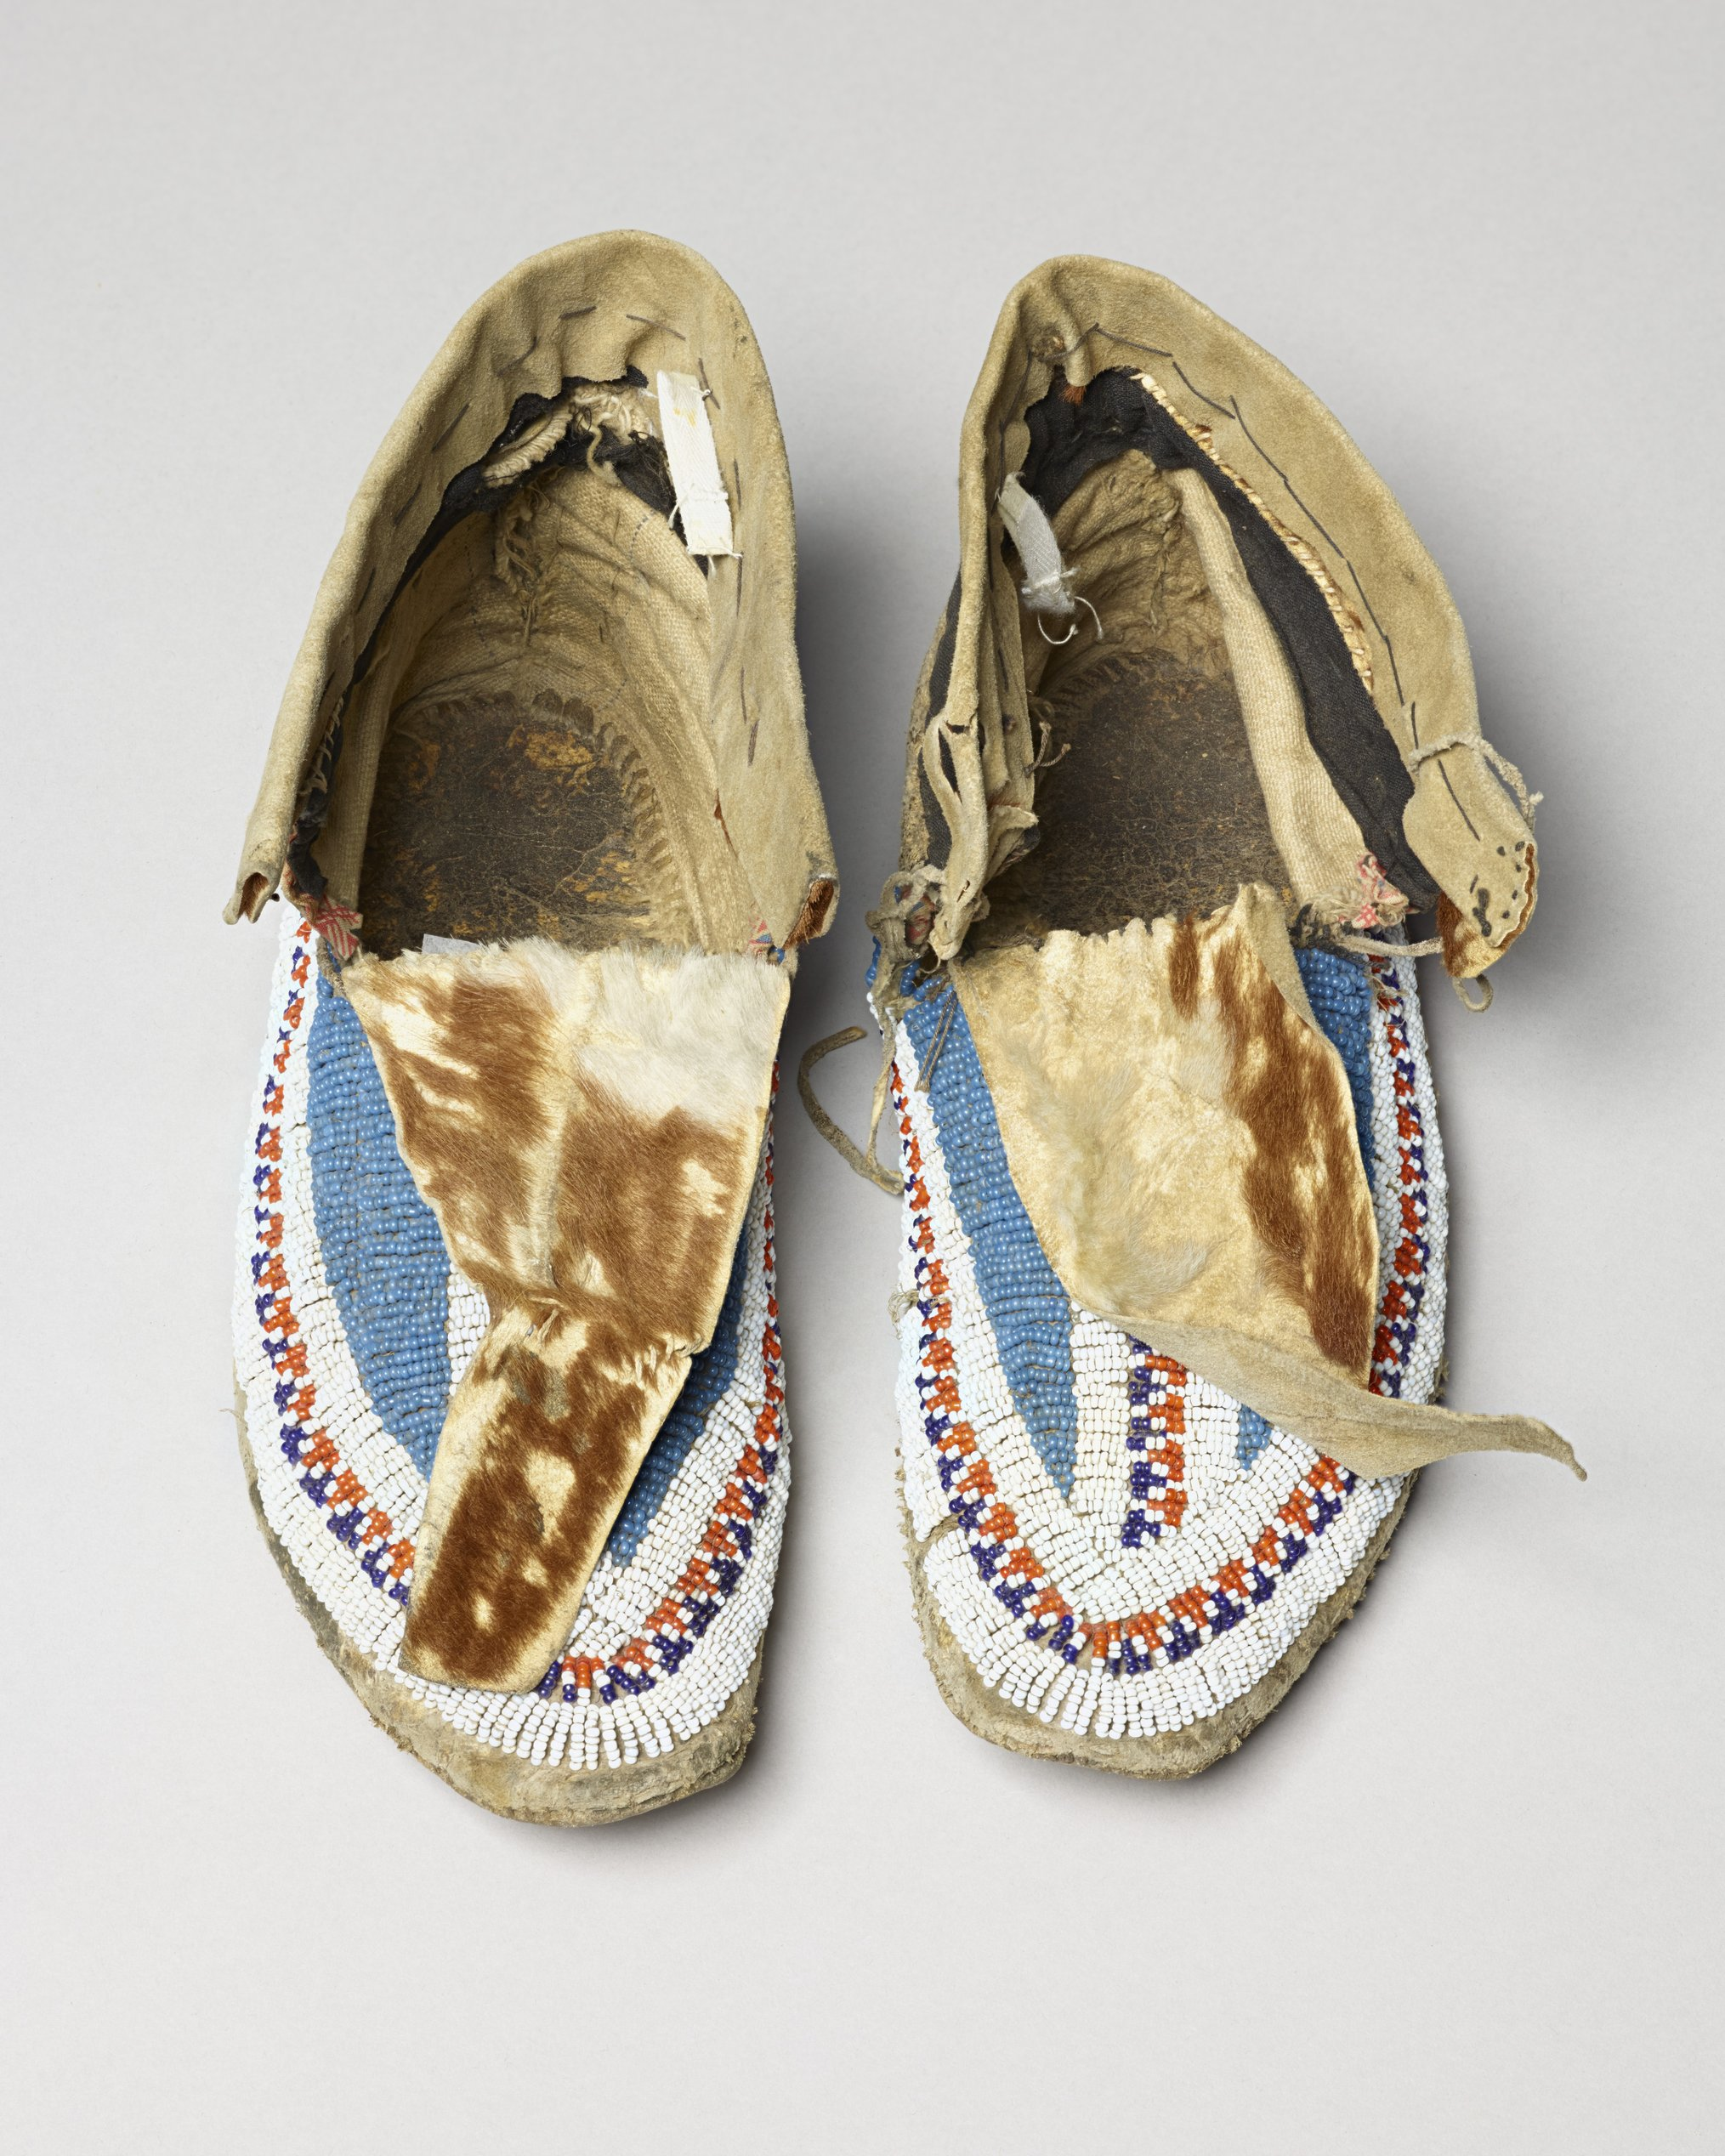 Beaded Moccasins - 2